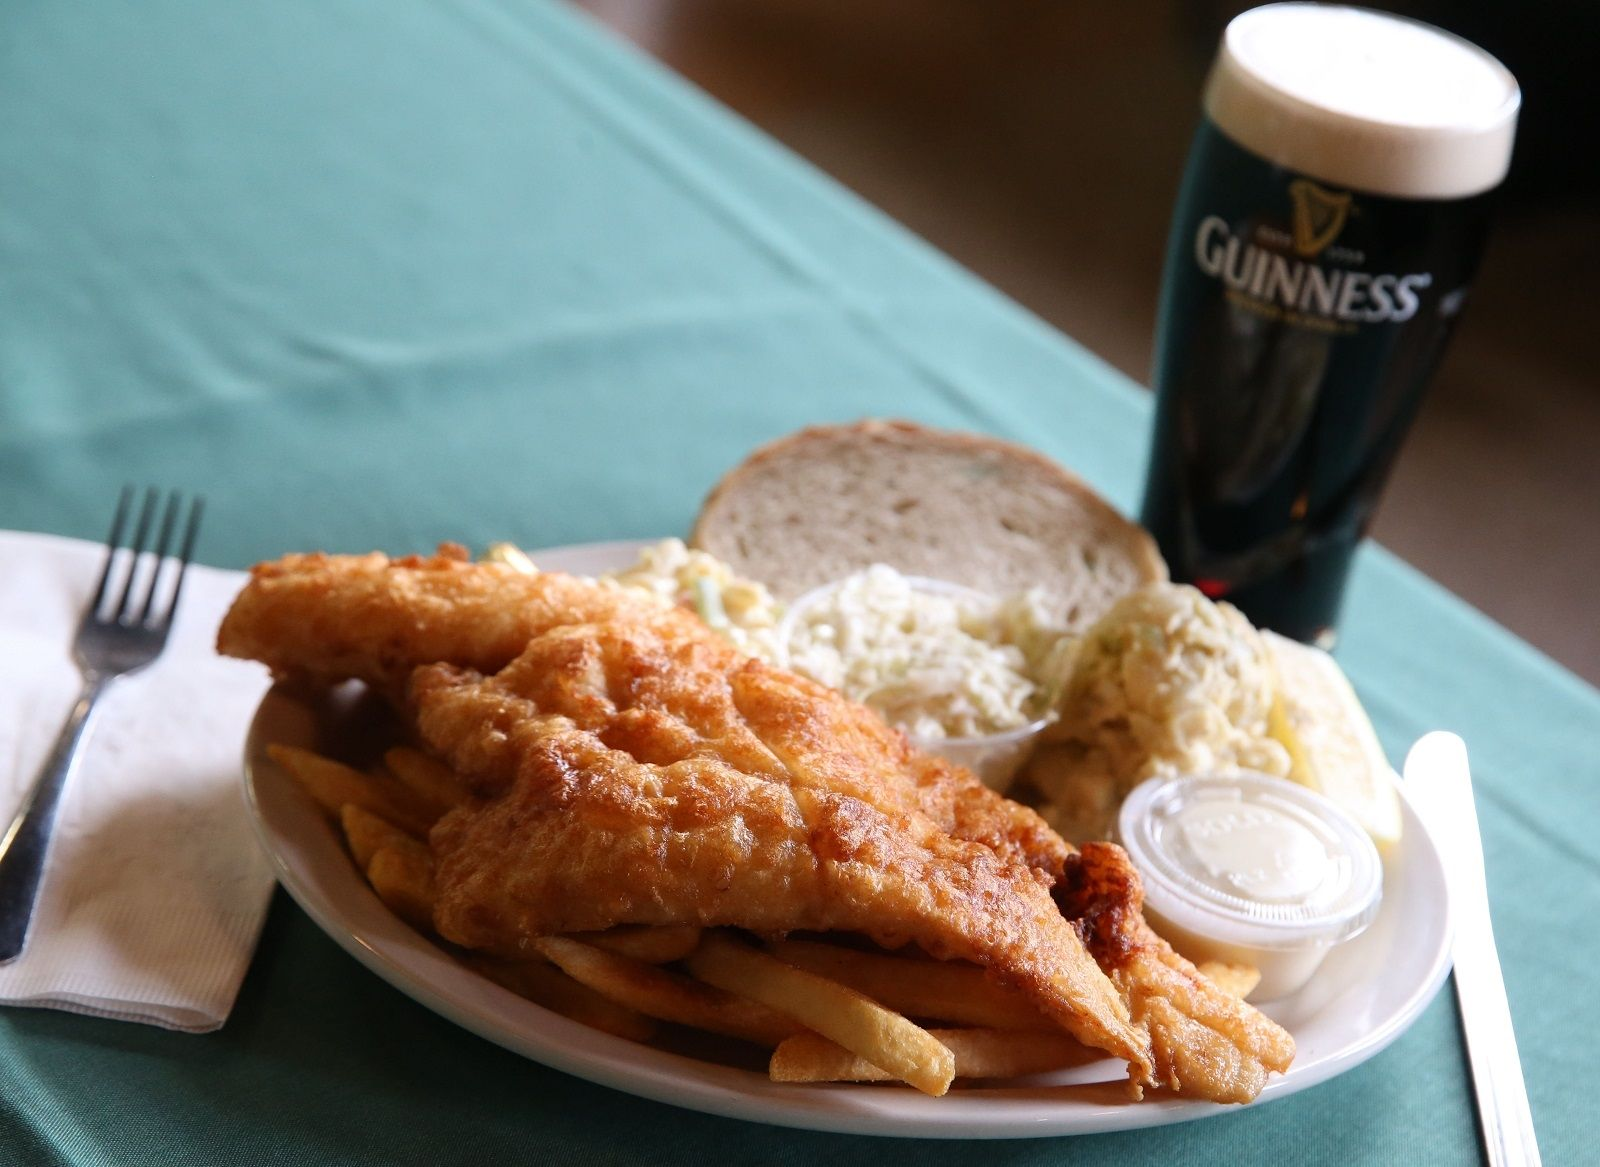 The Buffalo Irish Center's beer-battered haddock comes with coleslaw, macaroni salad, potato salad, fries and rye bread. They also offer broiled haddock in lemon pepper, Cajun or Italian.